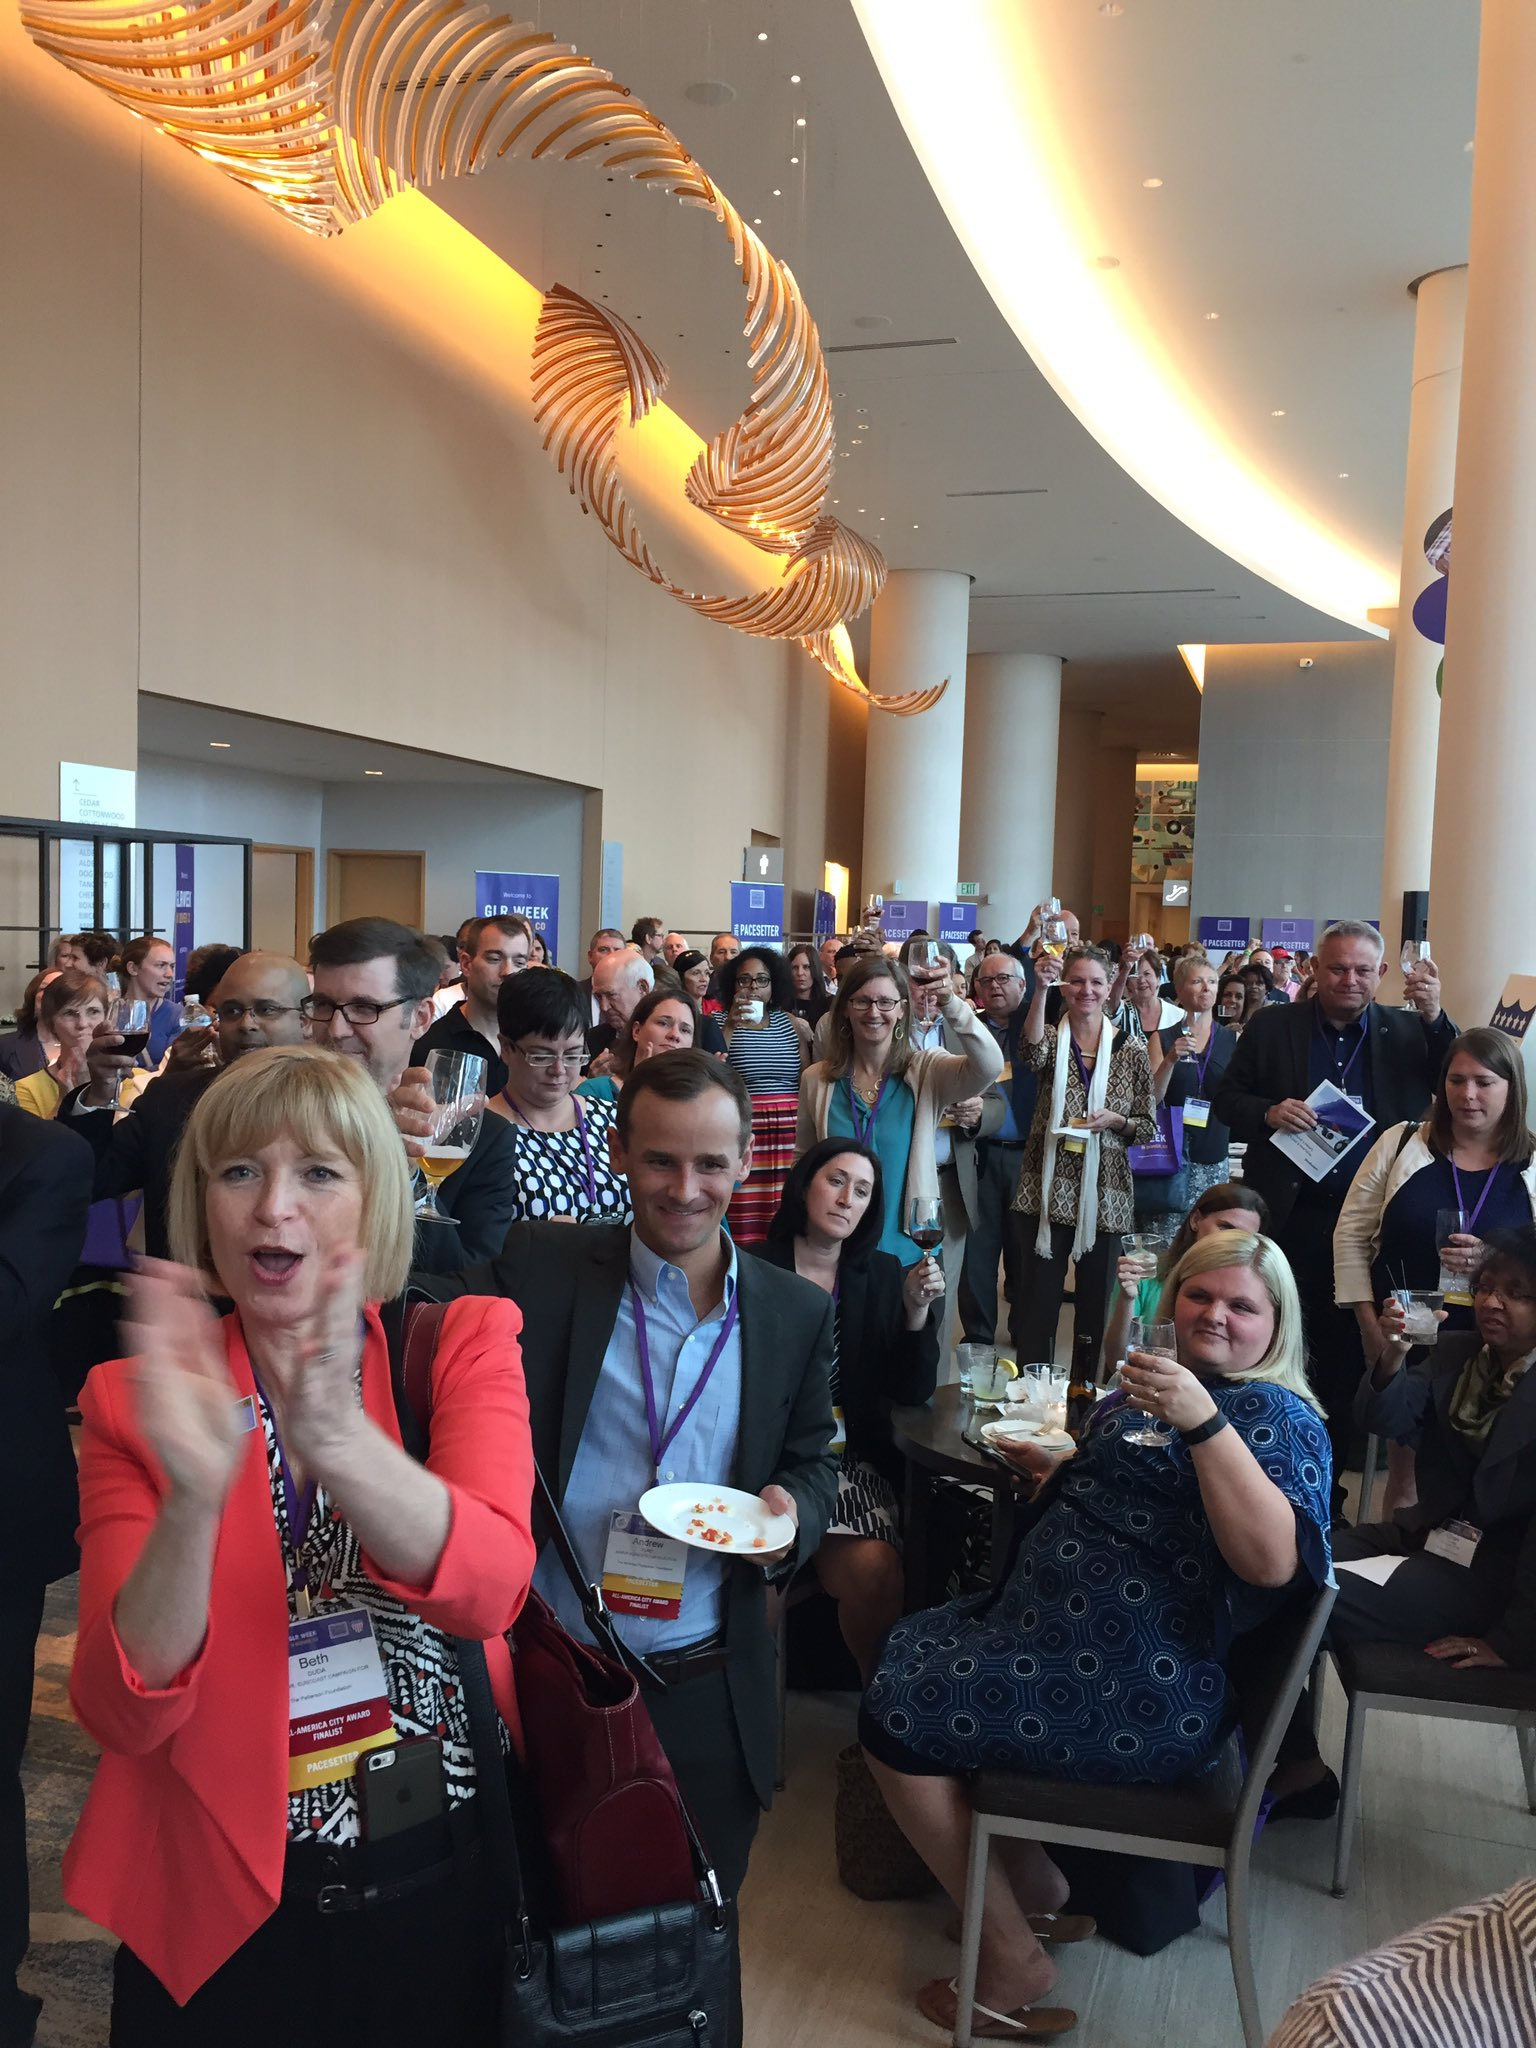 Raise your glass to @DebraMJacobs for all of her contributions to the Funder Huddle. #GLRWeek https://t.co/AdZjxjweaq